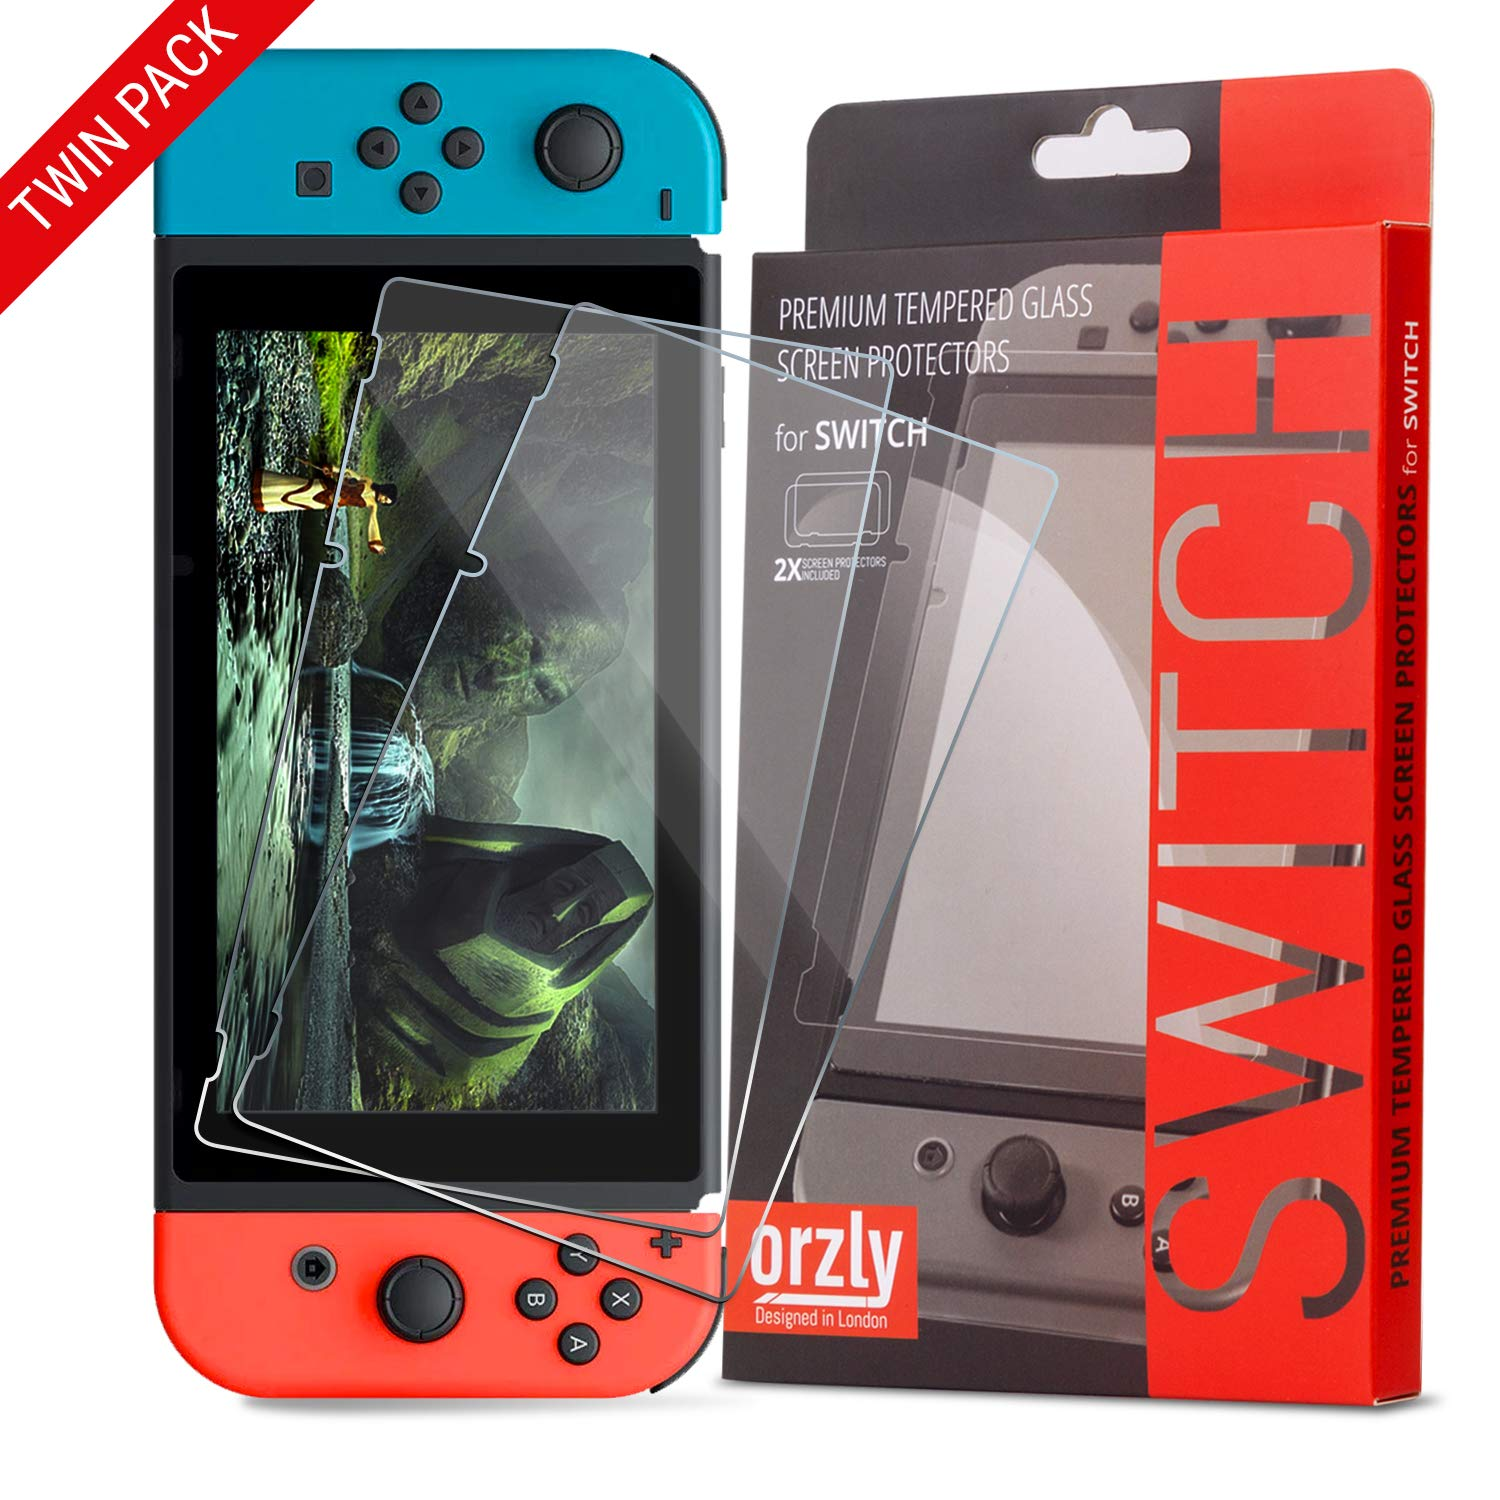 sports shoes 50272 0a13a Orzly Glass Screen Protectors compatible with Nintendo Switch - Premium  Tempered Glass Screen Protector TWIN PACK [2x Screen Guards - 0.24mm] for  6.2 ...